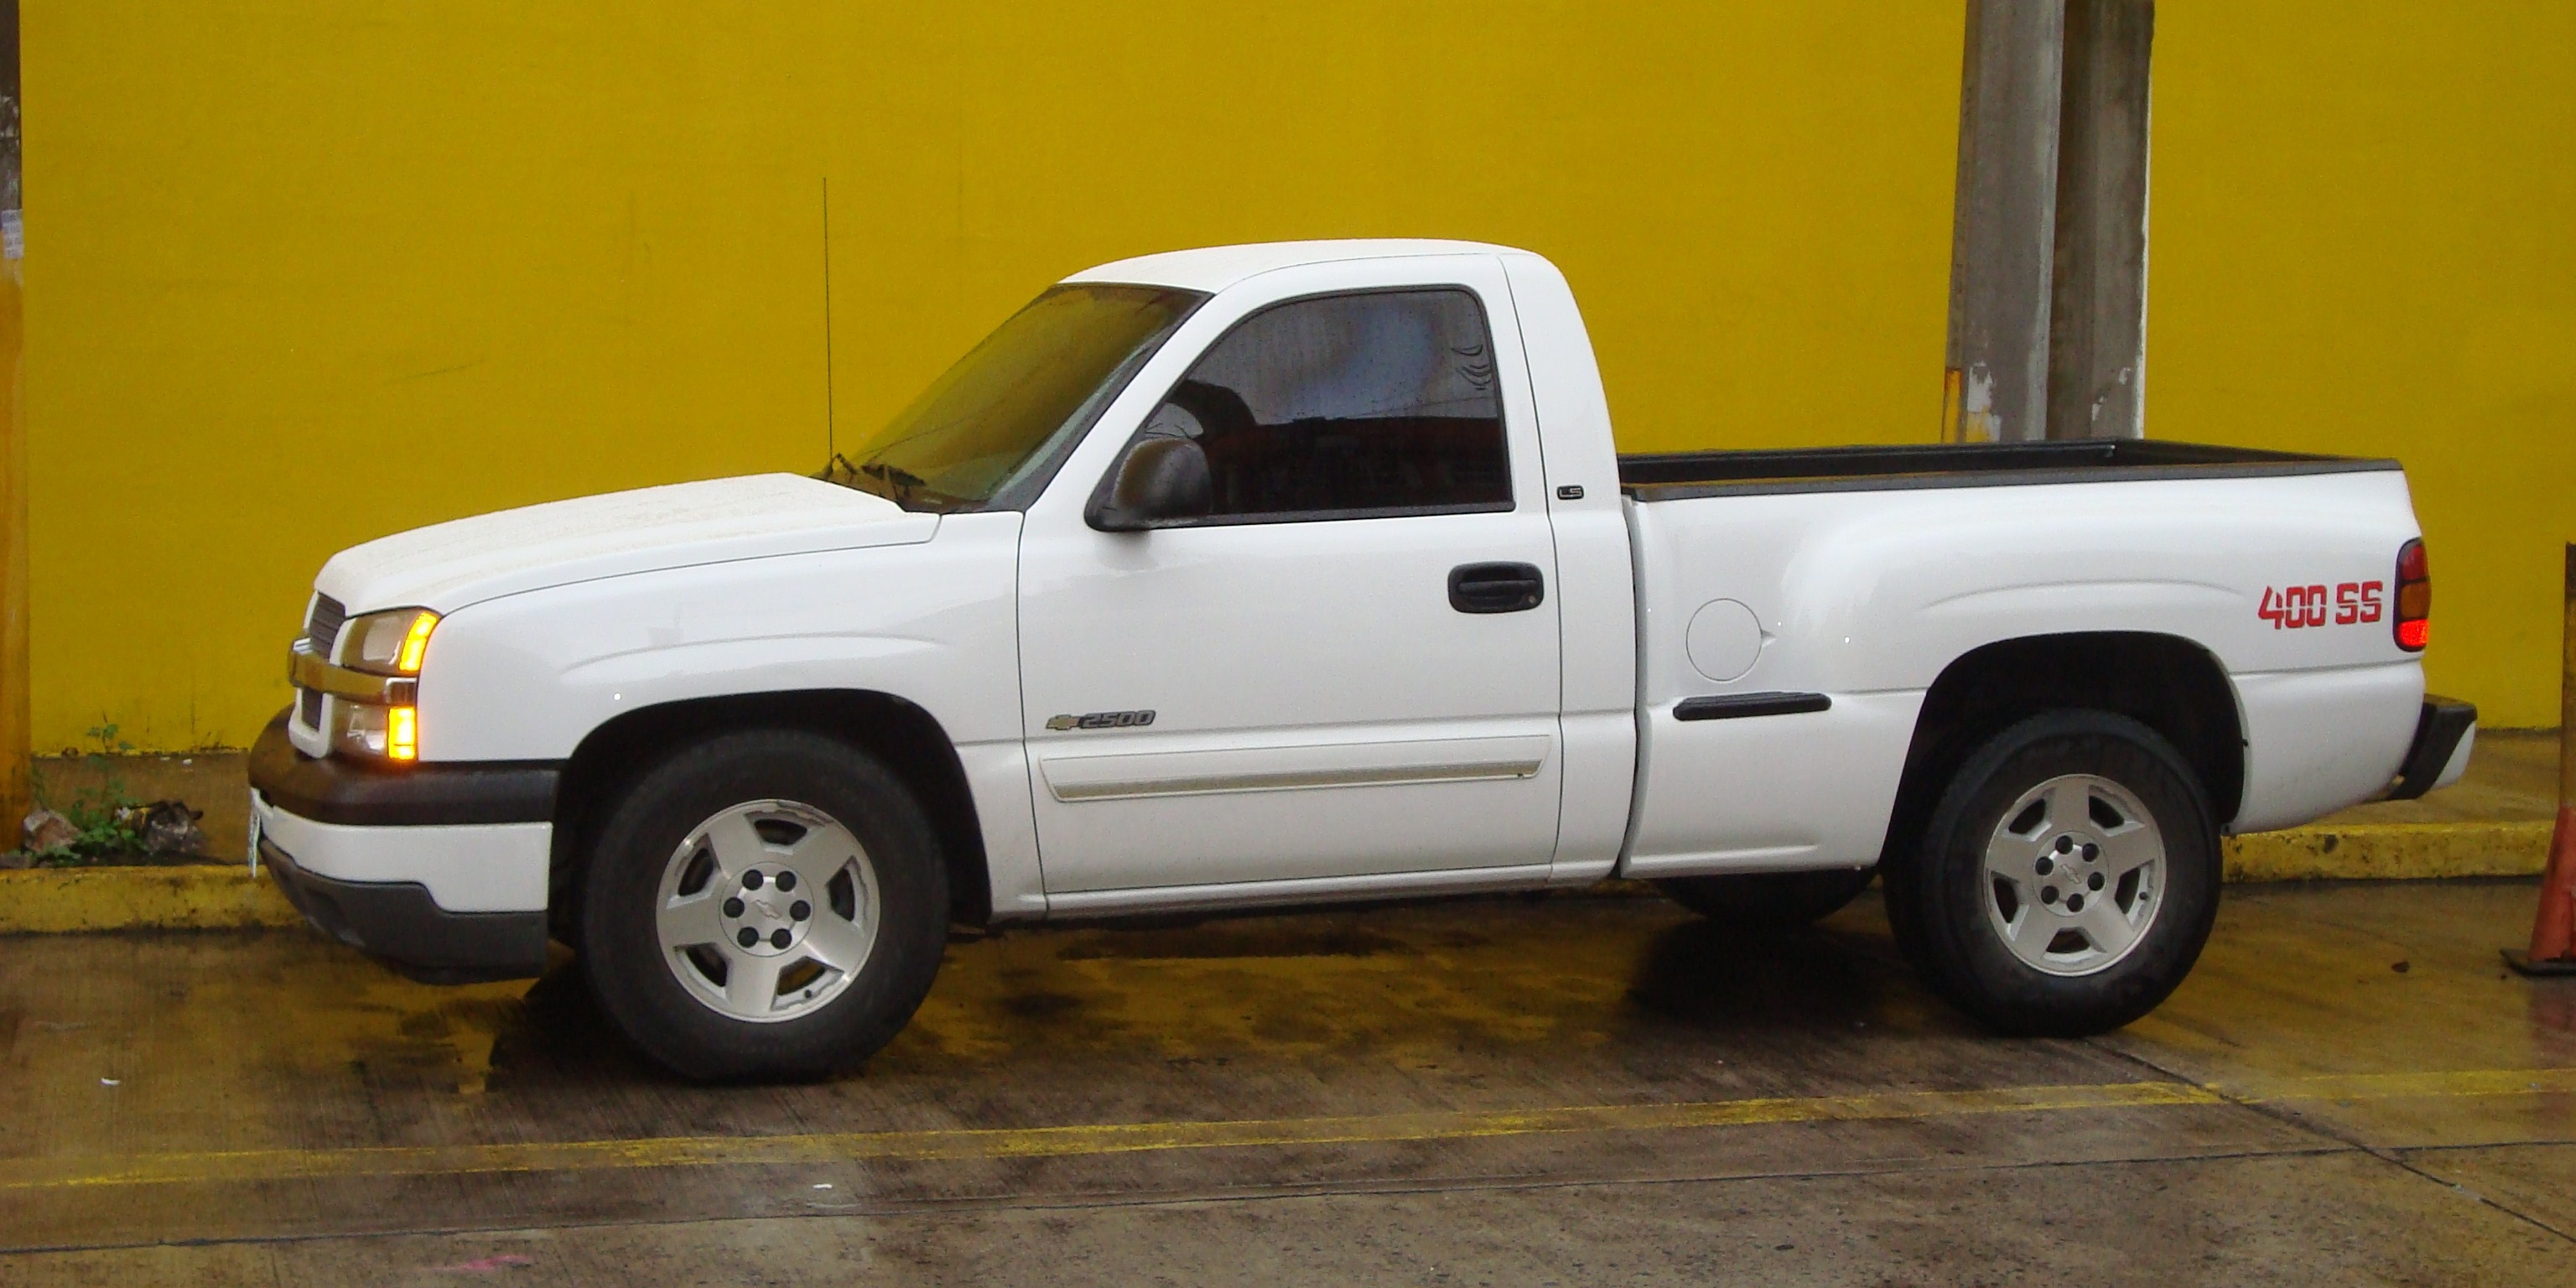 400ssgarces 2005 Chevrolet Silverado 1500 Regular Cab 14427439